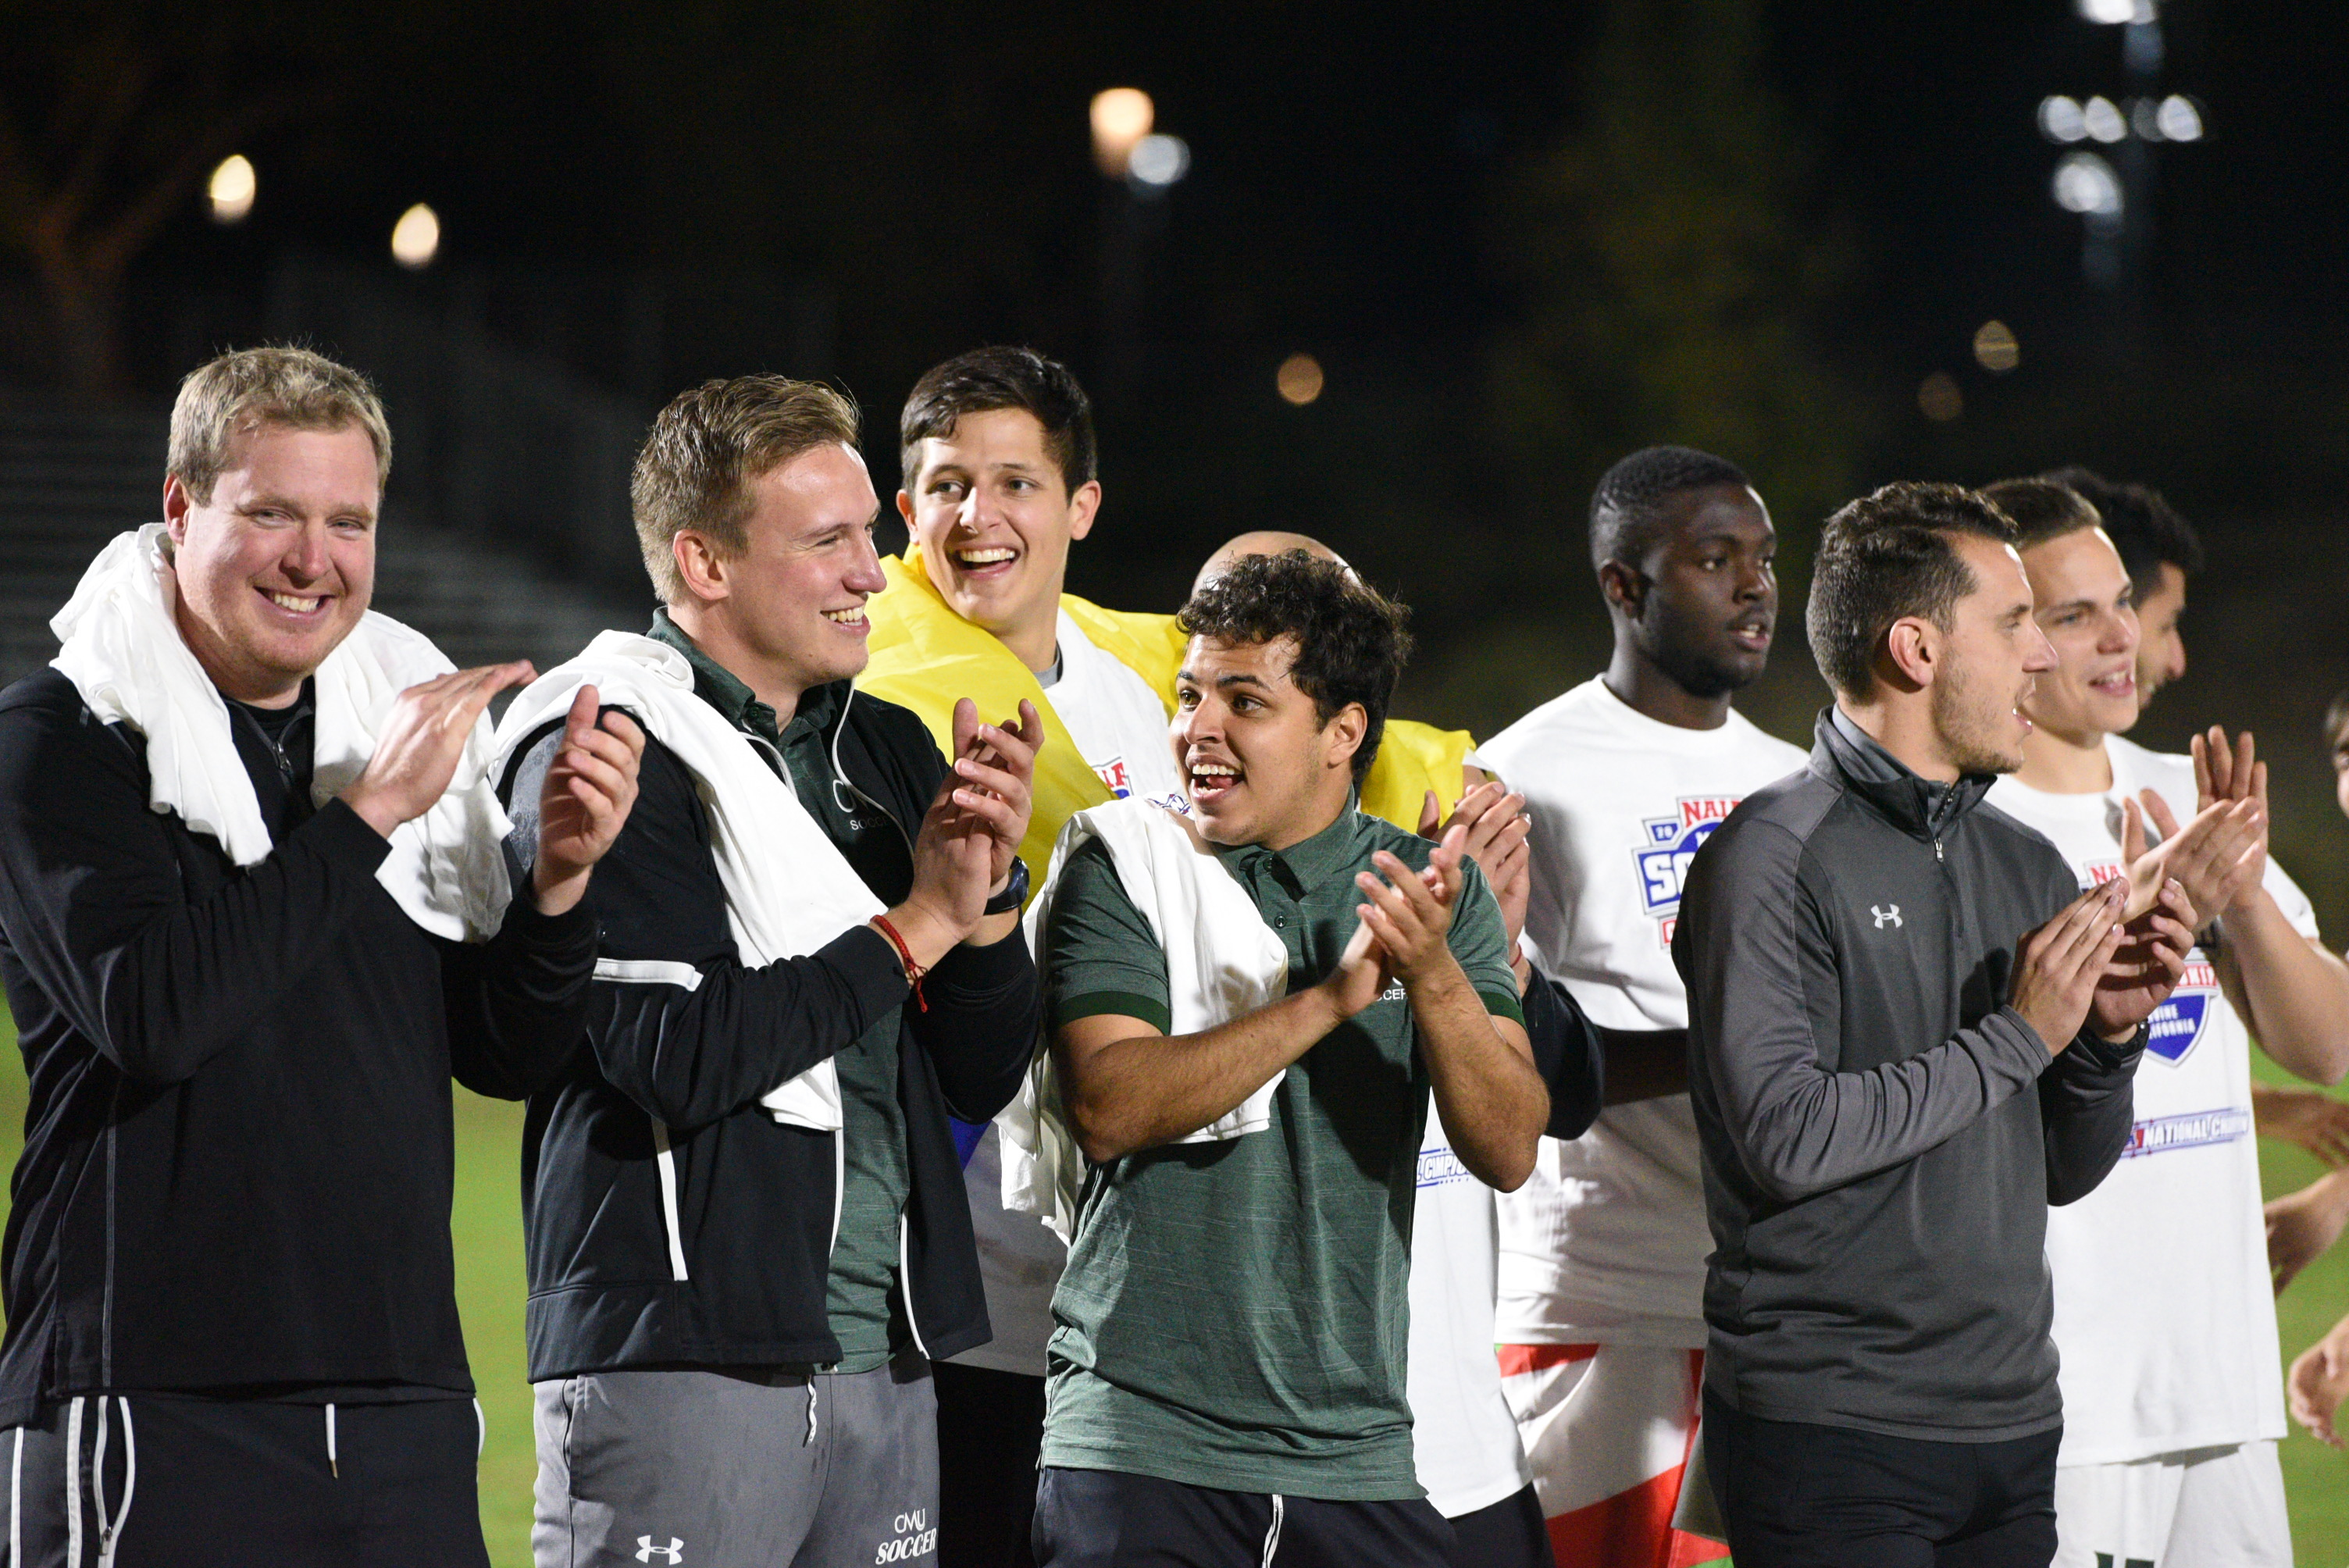 2018 NAIA Men's Soccer Coach of the Year